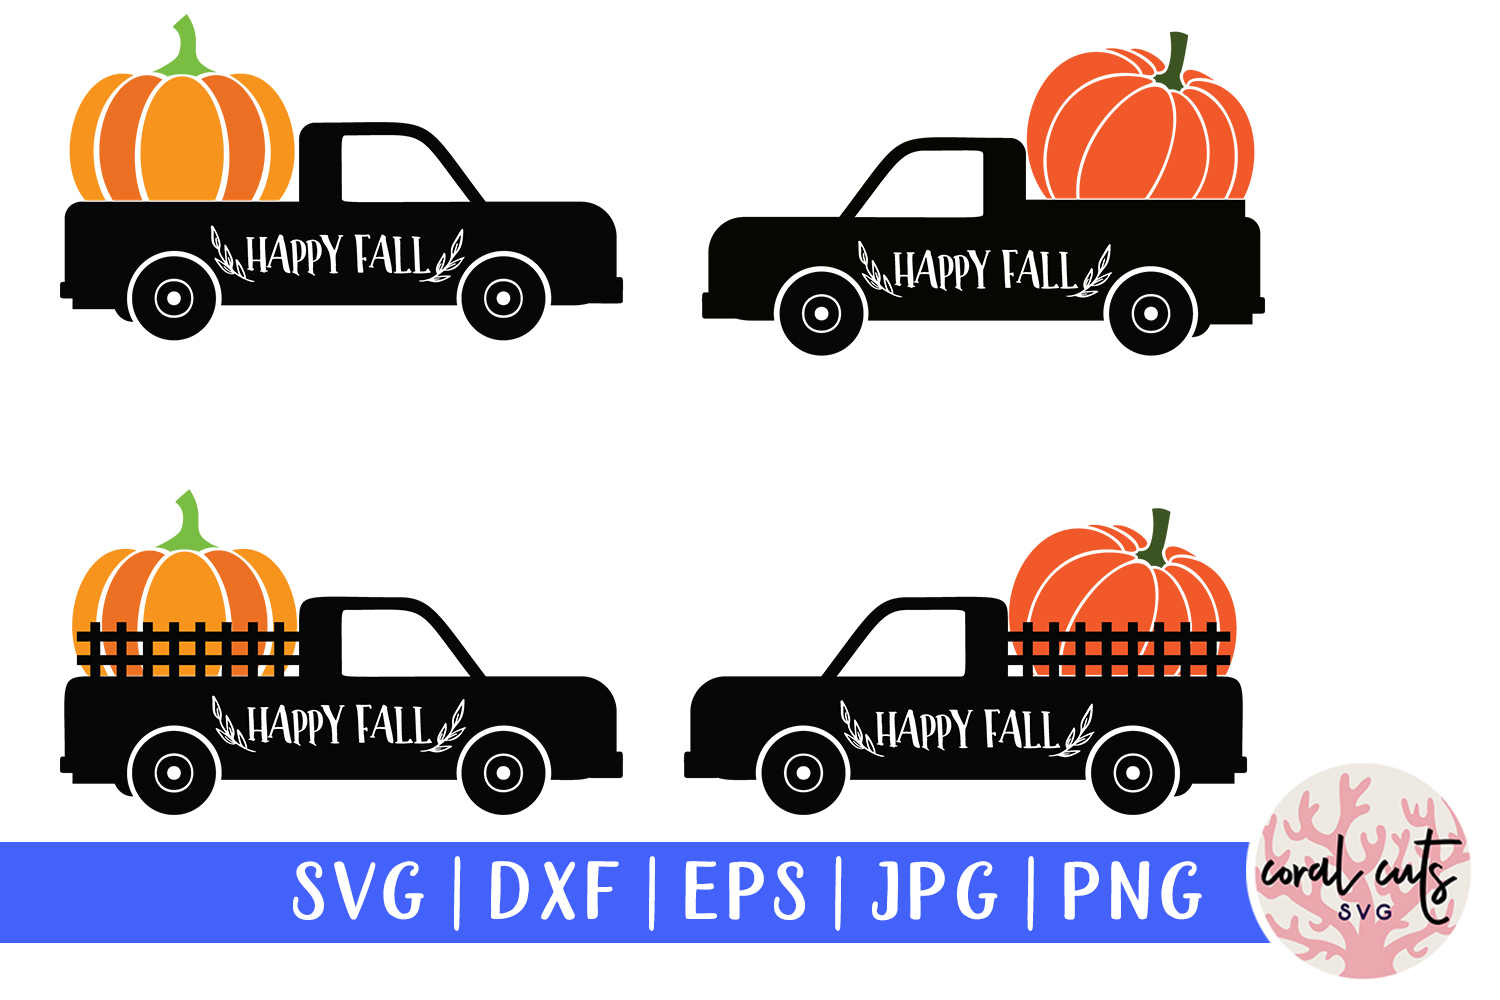 Download Free Pumpkin Truck Decoration Graphic By Coralcutssvg Creative Fabrica for Cricut Explore, Silhouette and other cutting machines.